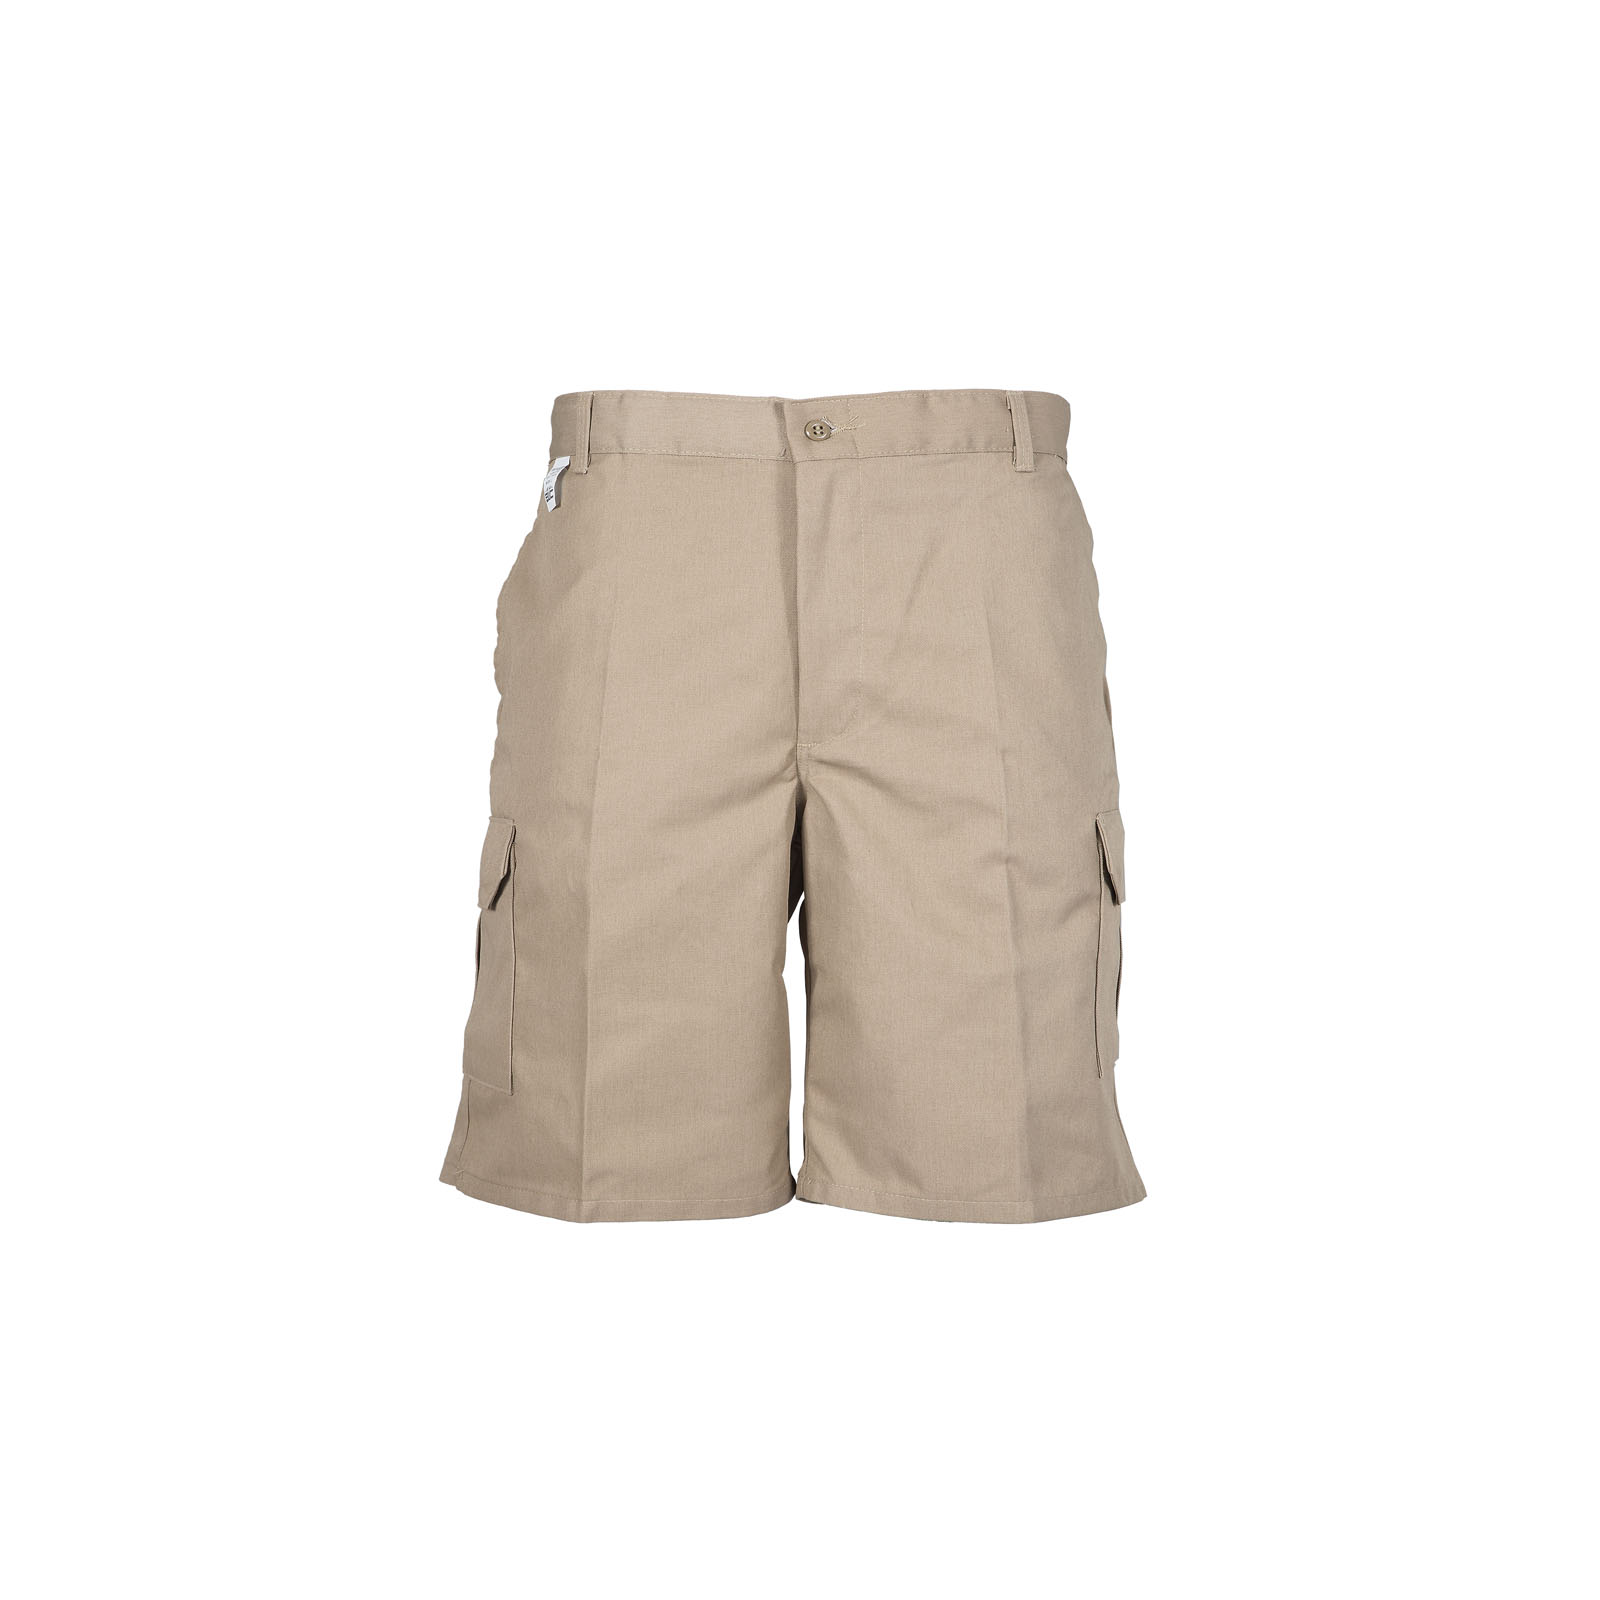 PS24-Industrial Men's Cargo Shorts, Durable Press